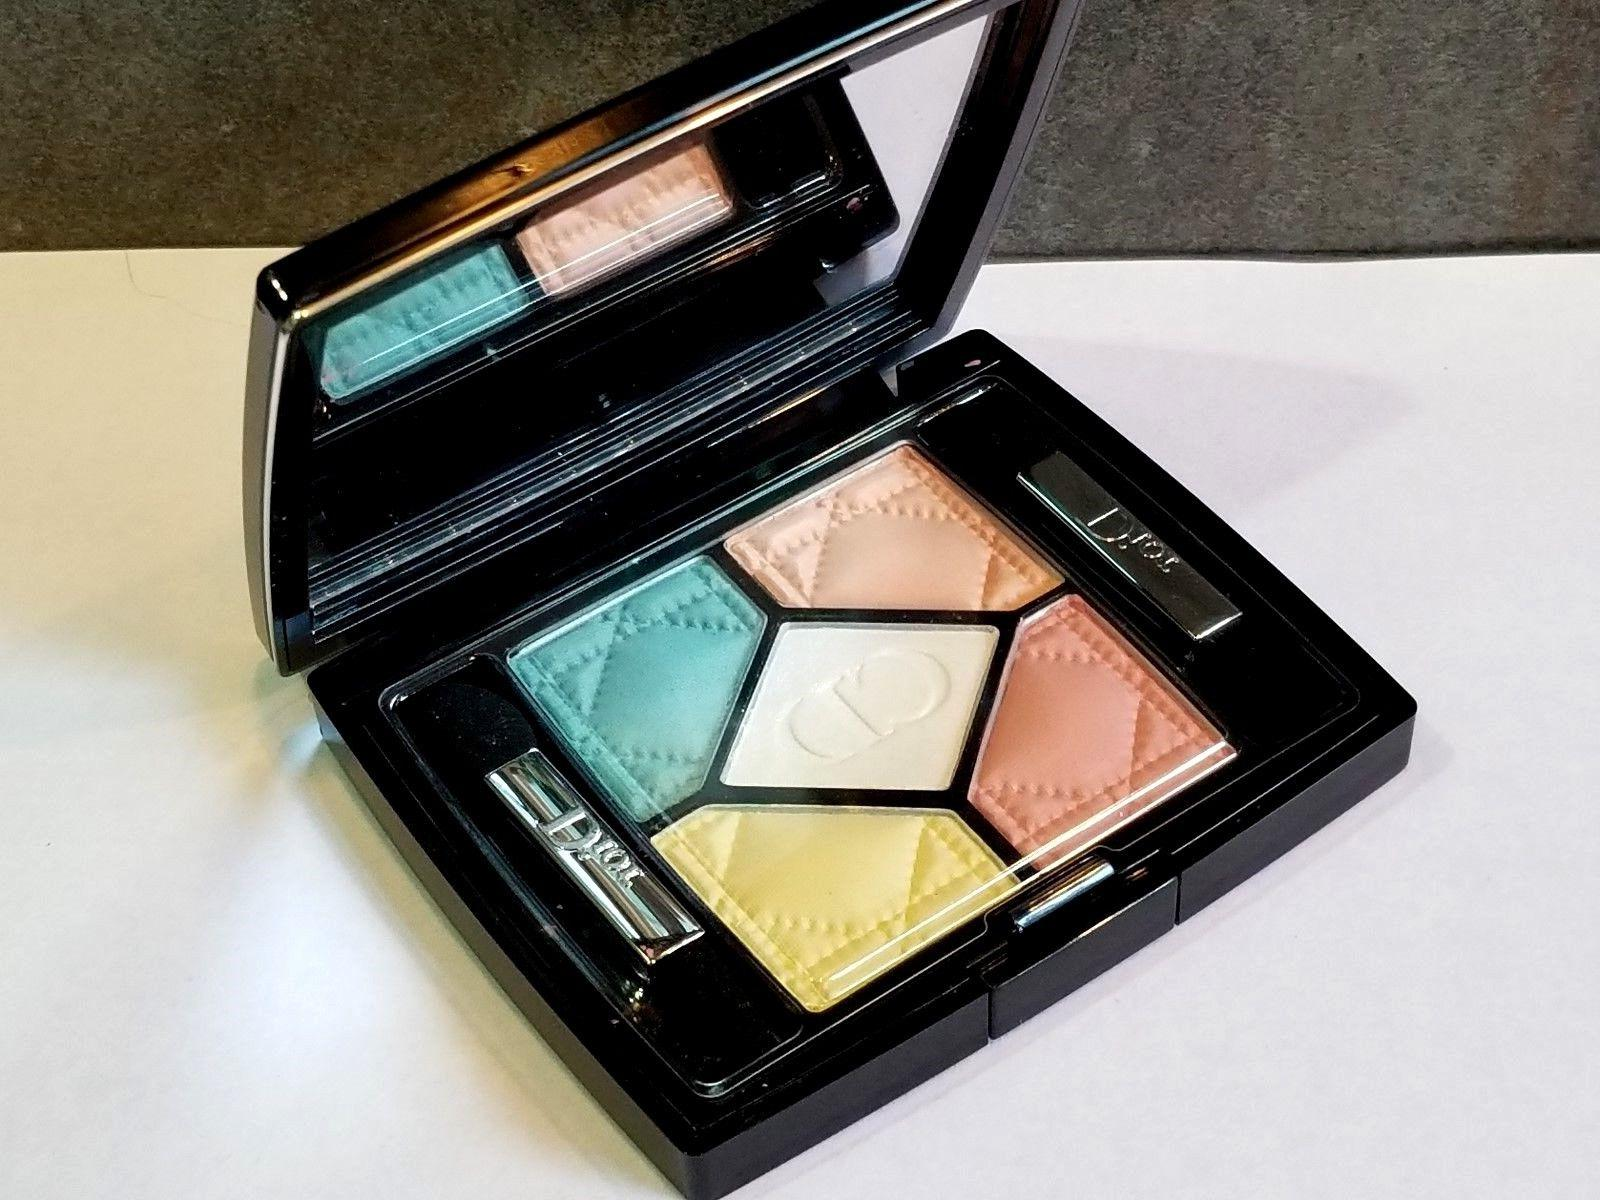 5 color eyeshadow palette 676 candy choc